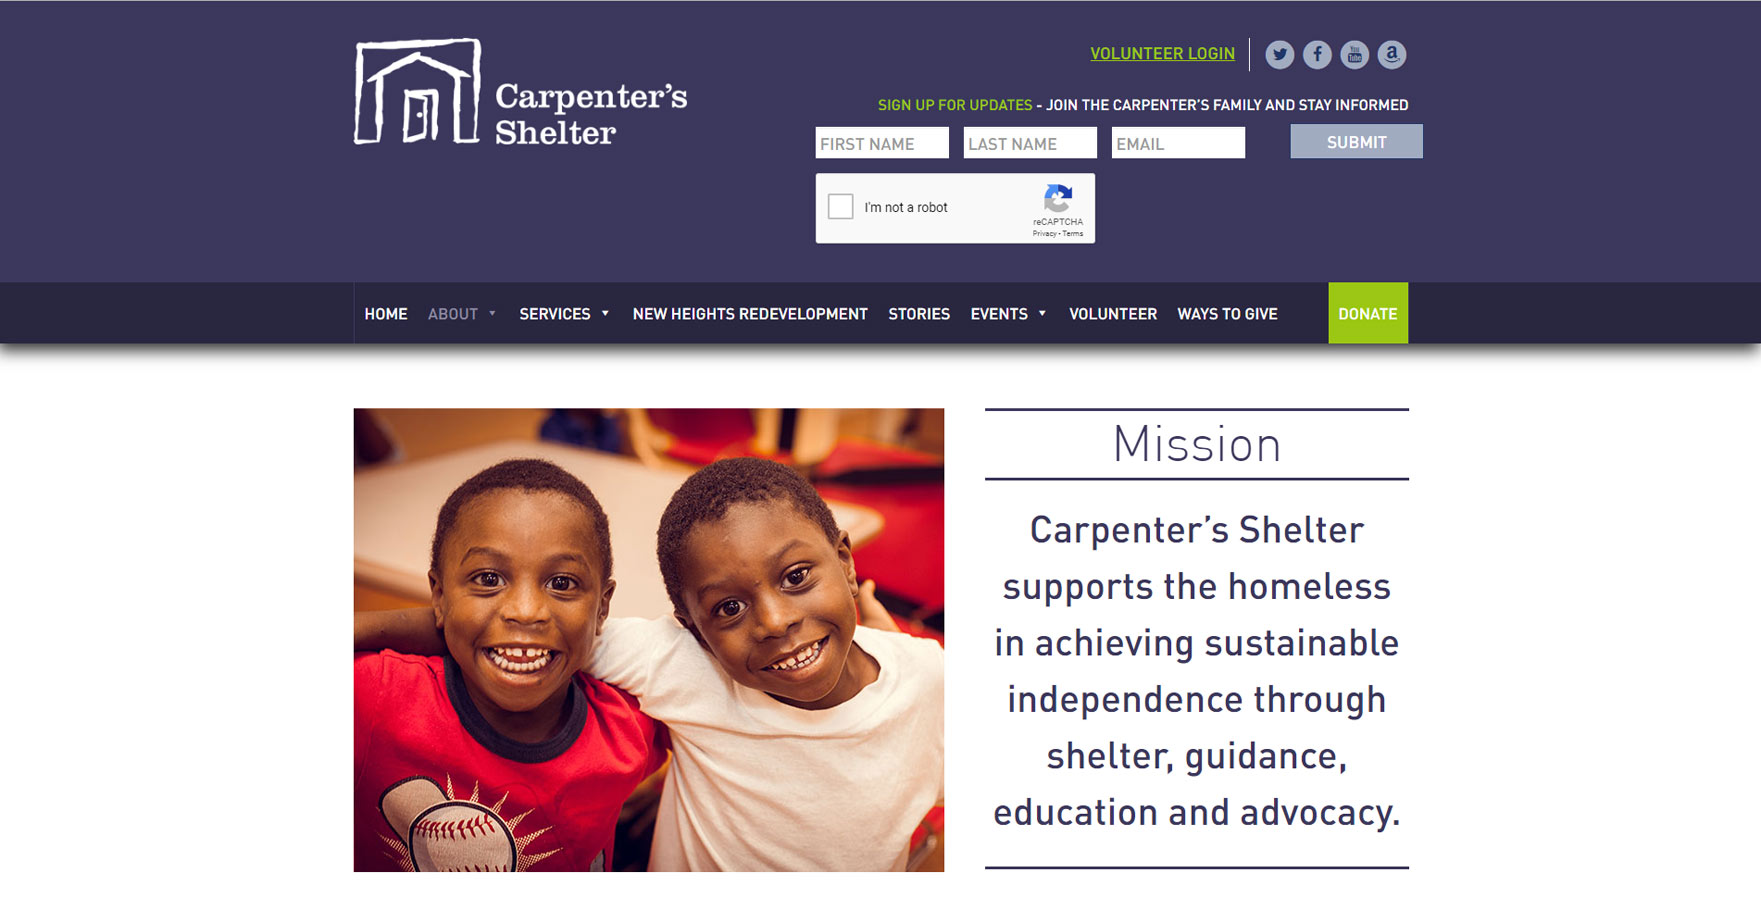 A WordPress website developed by Advanced Systemics for Carpenter's Shelter in Alexandria, Virginia